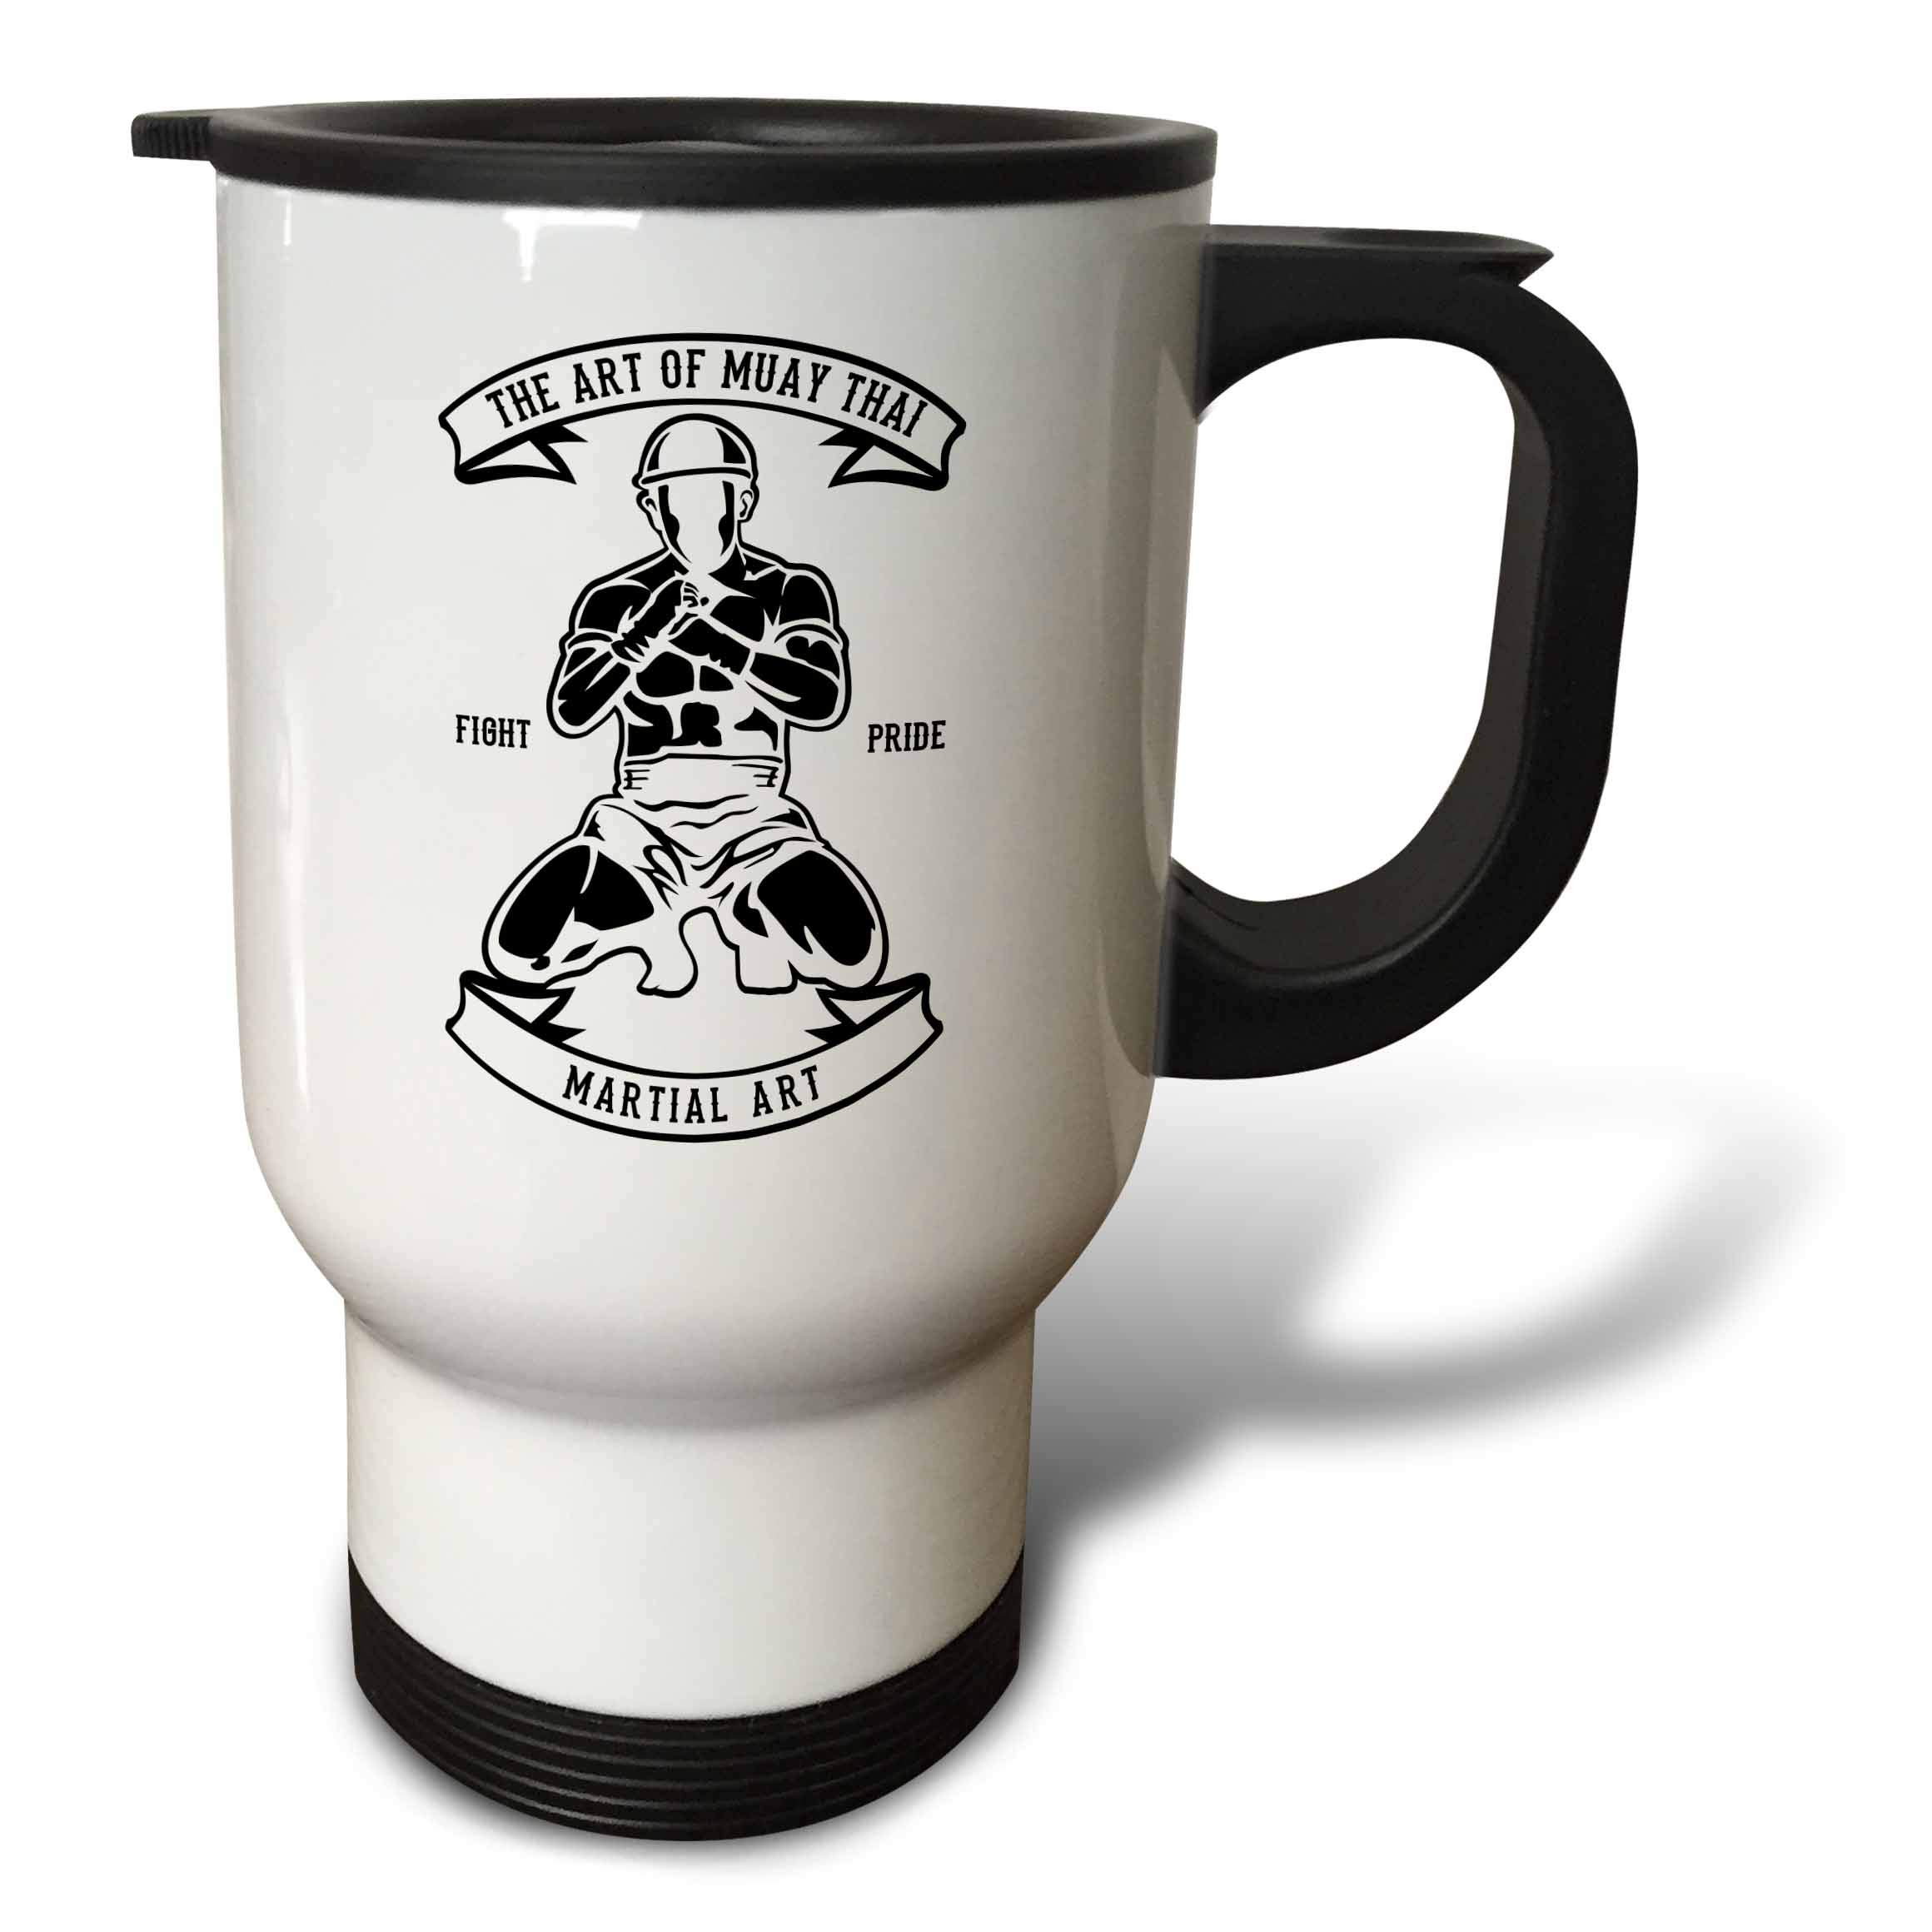 3dRose Alexis Design - Vintage - Image of martial arts fighter. The art of muay thai. Fight pride - 14oz Stainless Steel Travel Mug (tm_292303_1) by 3dRose